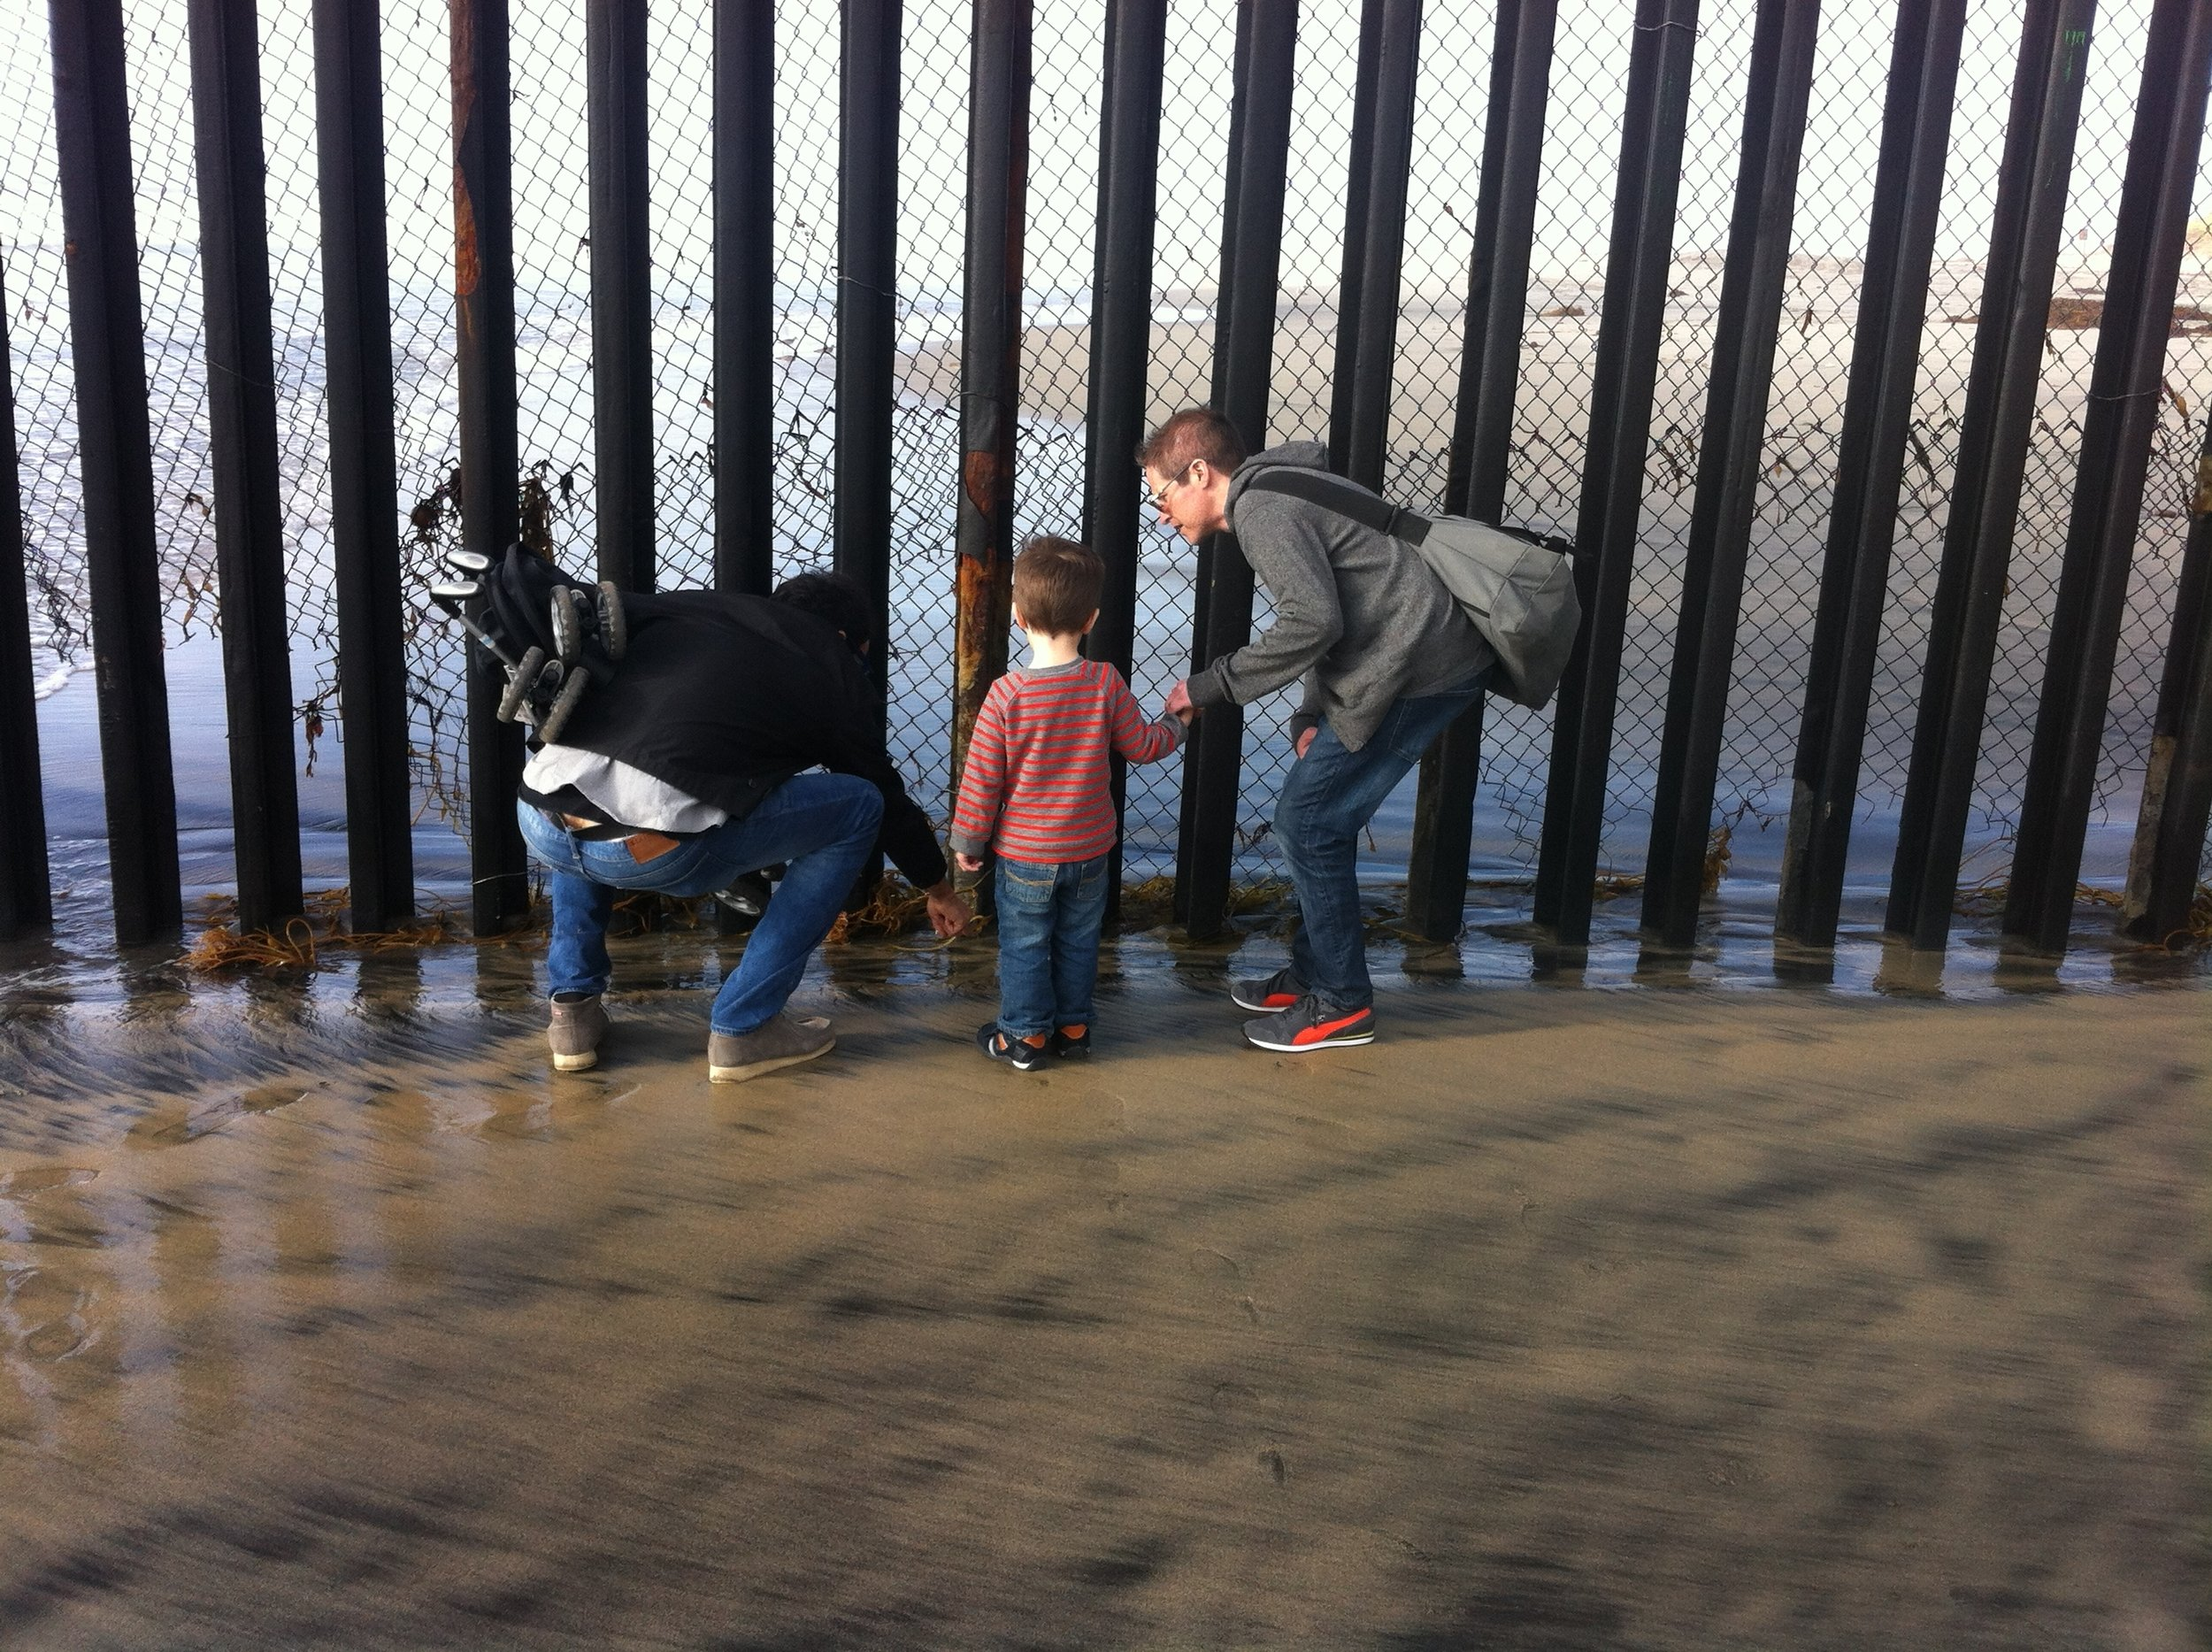 At the Border Fence.